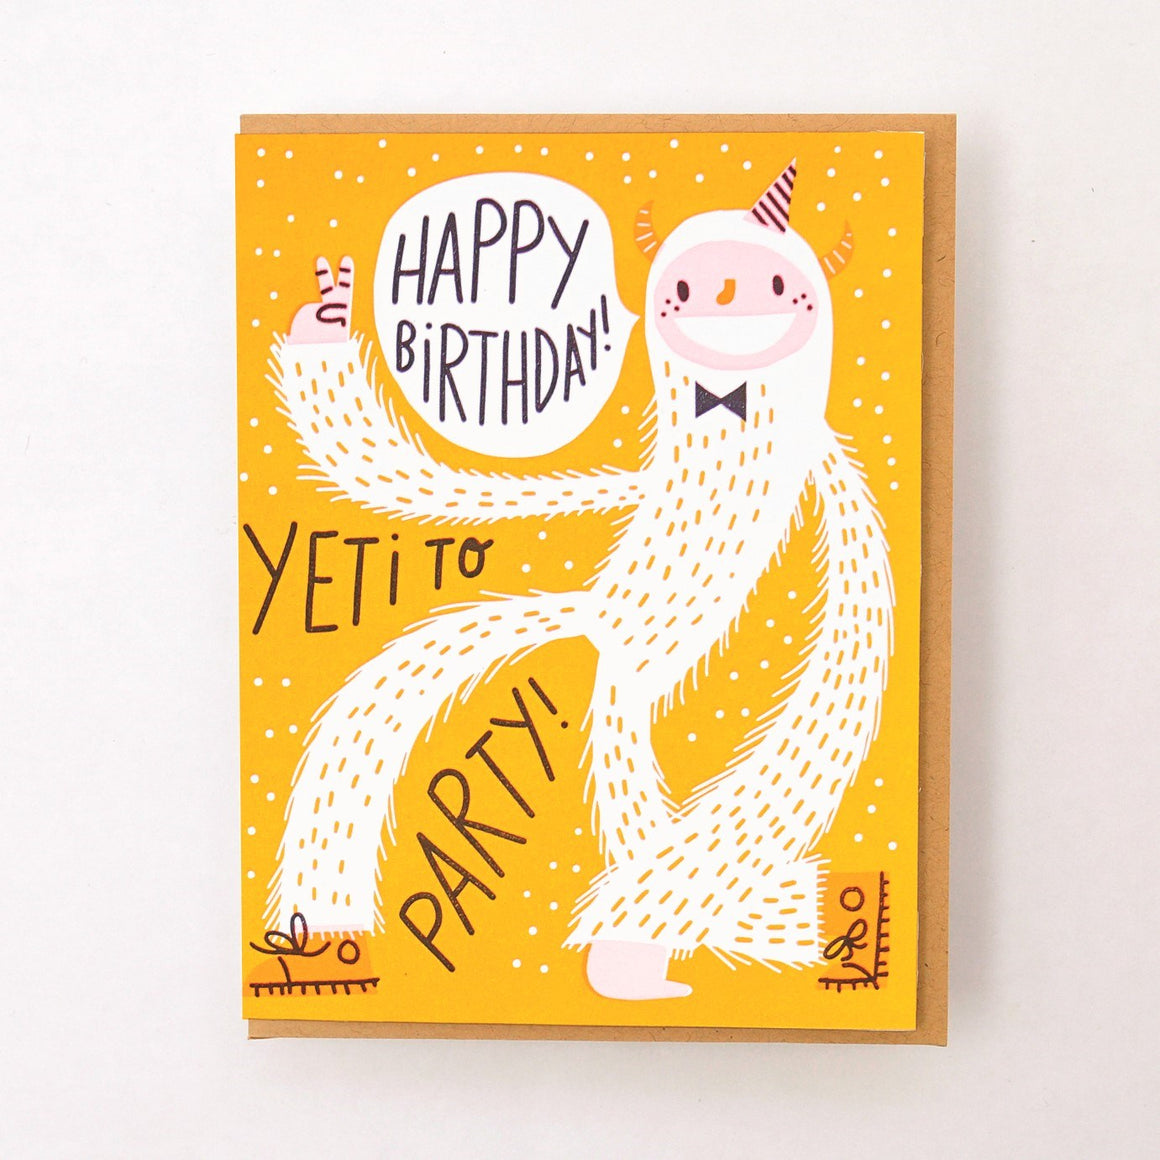 Yeti To Party Card